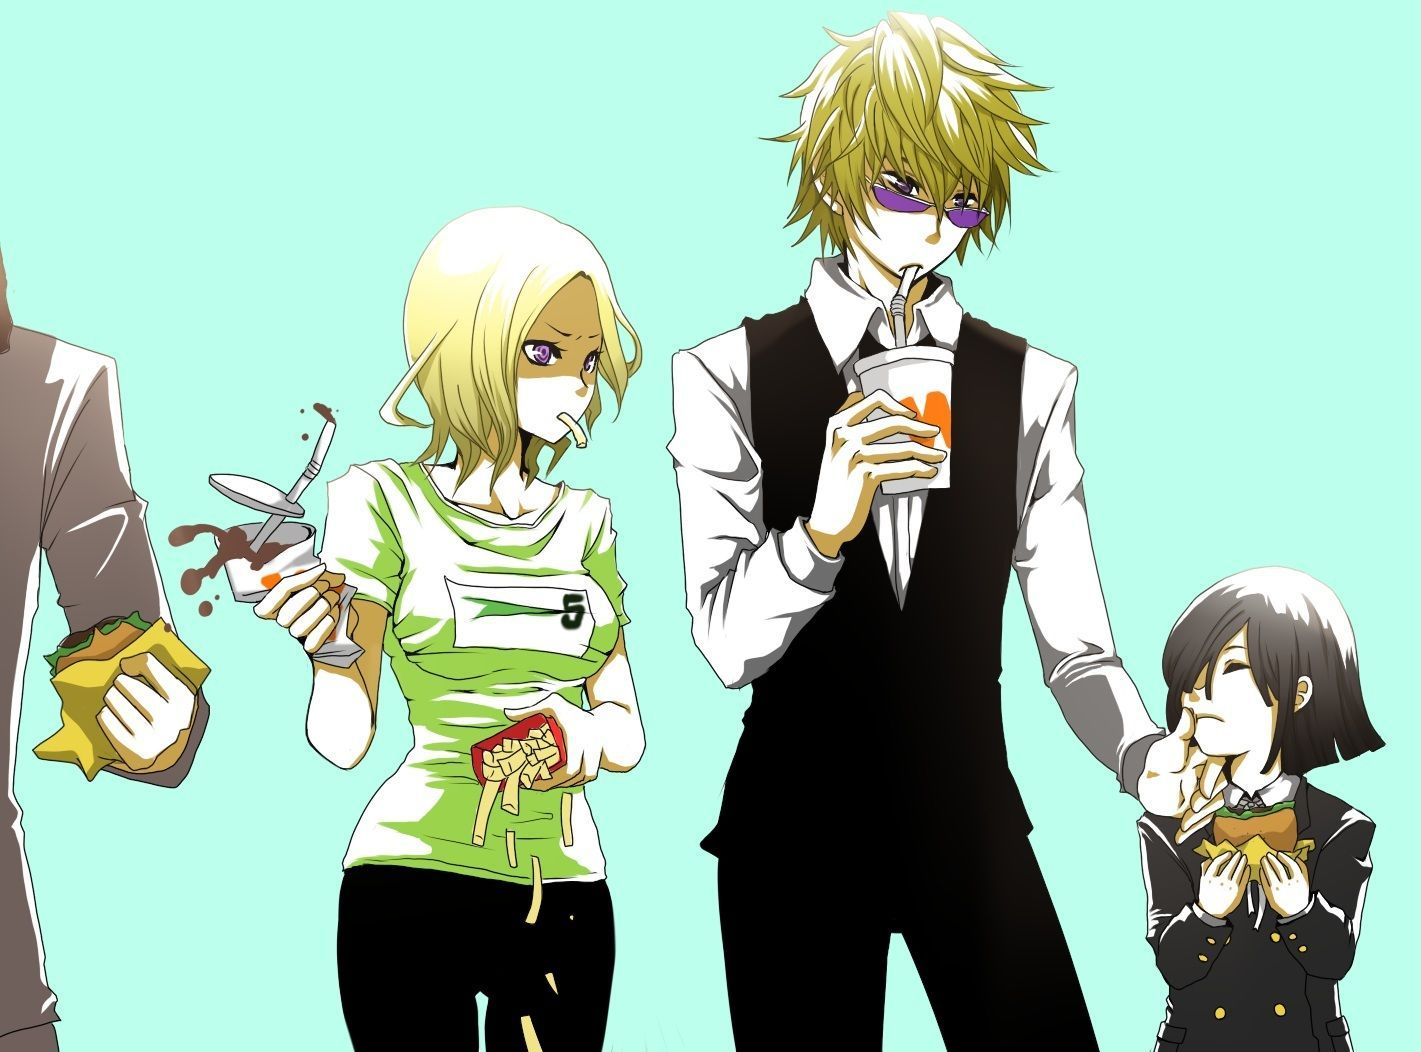 Durarara Shizuo And Vorona in 2020 Durarara, Anime